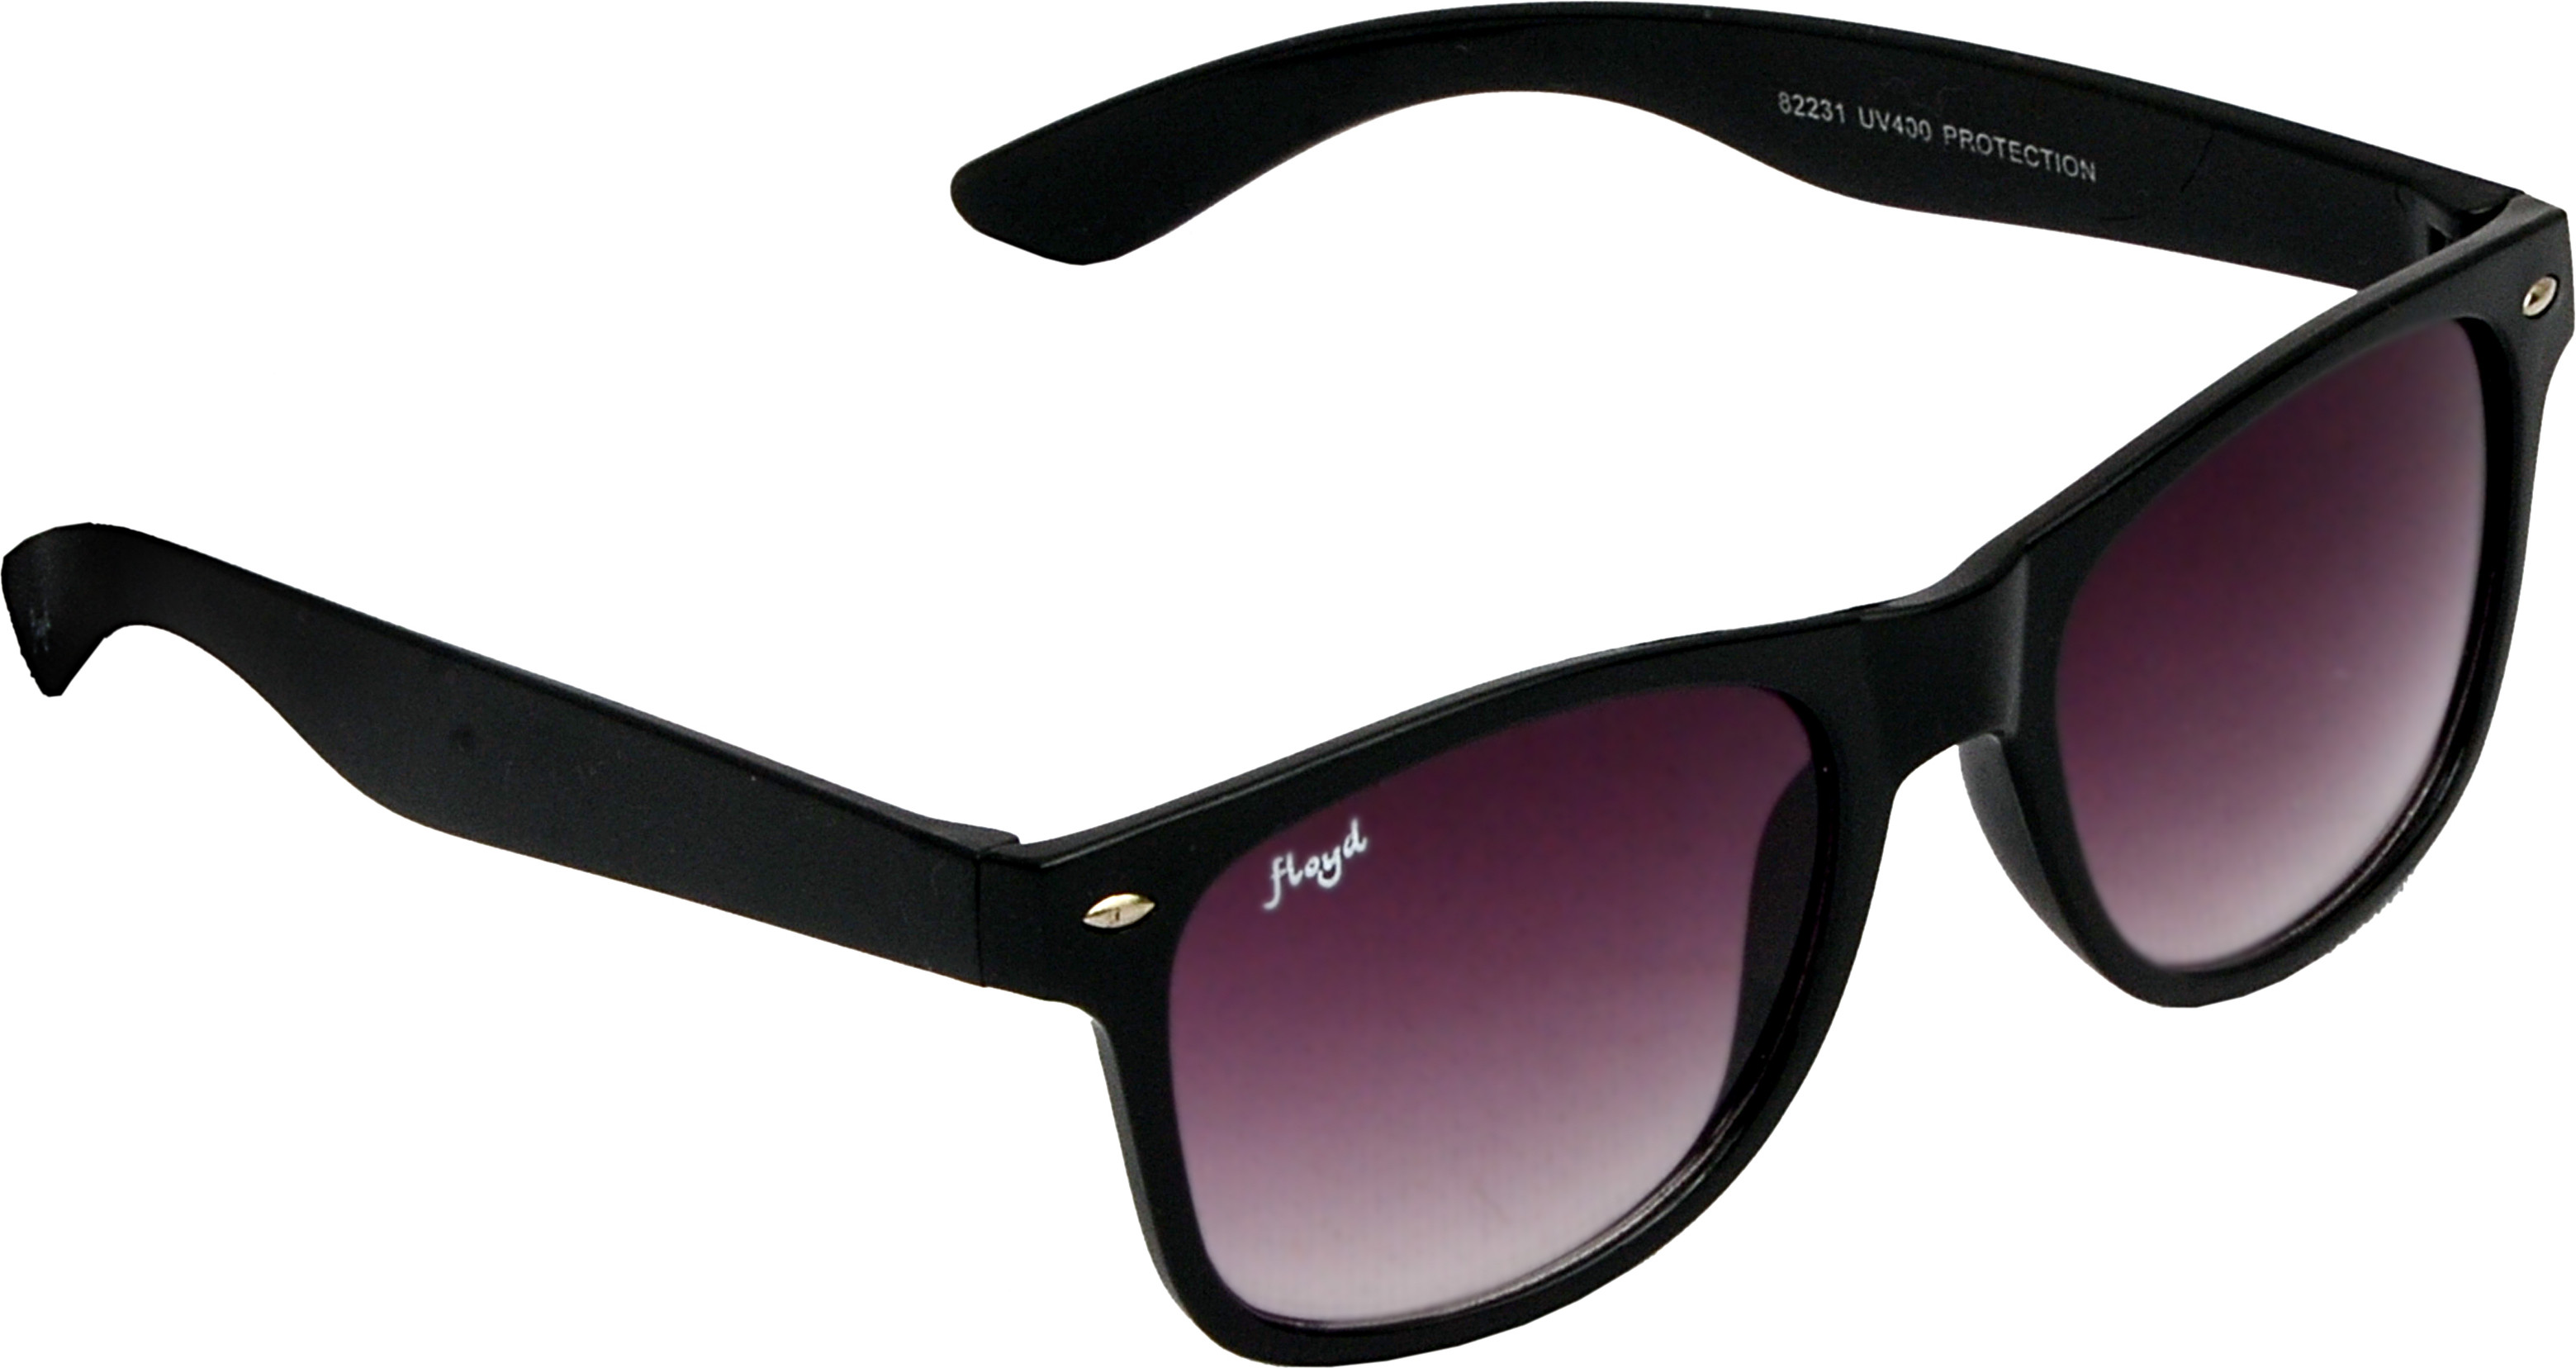 Deals - Delhi - Floyd, Abster... <br> Sunglasses<br> Category - sunglasses<br> Business - Flipkart.com